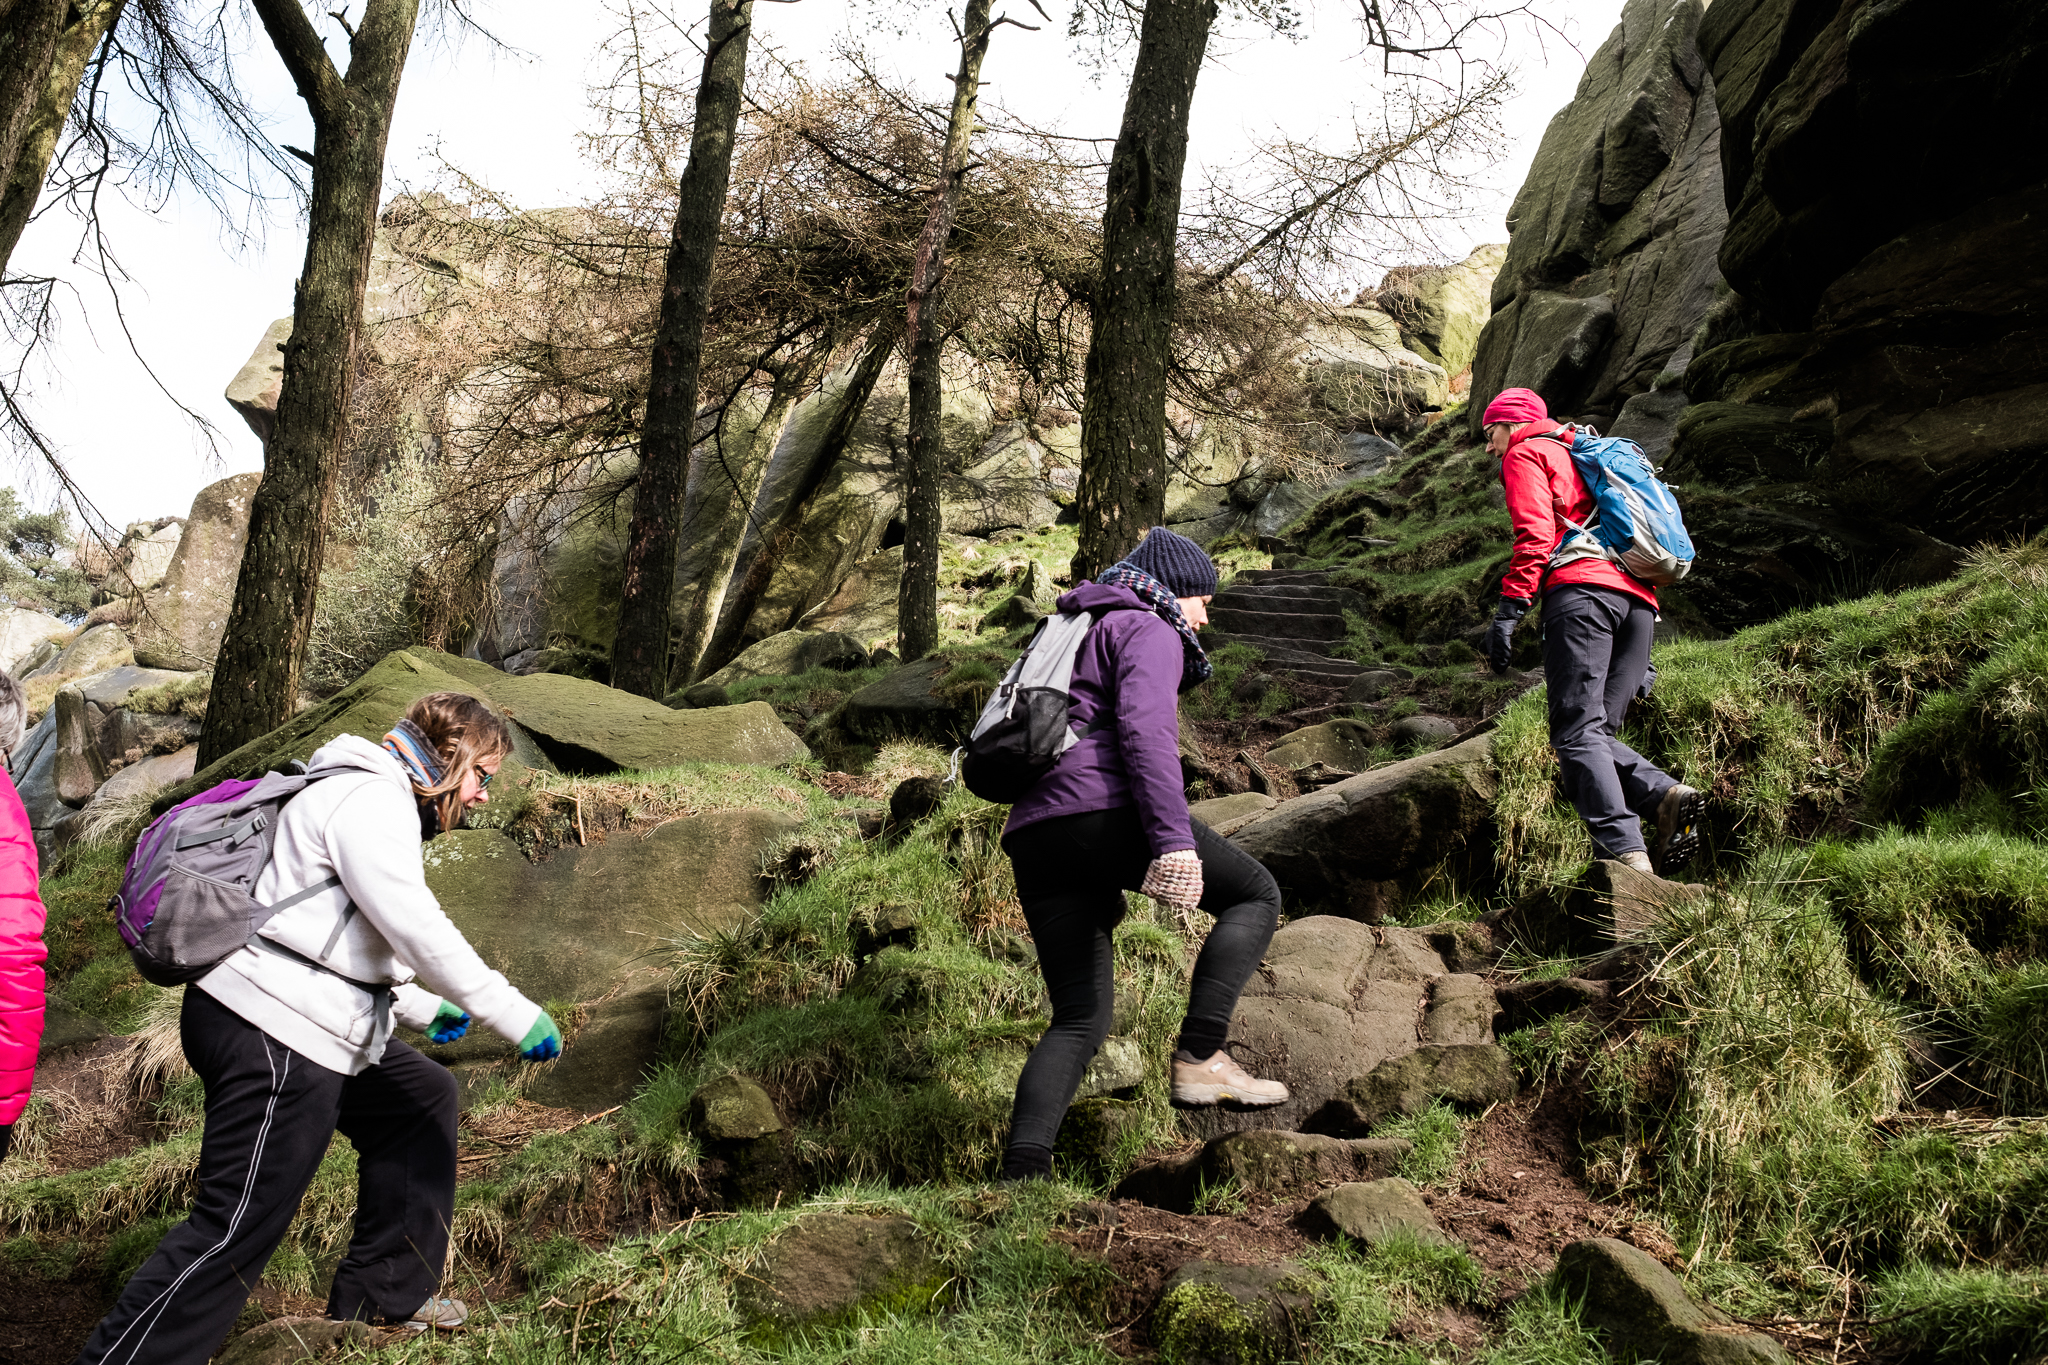 03.23.2017 Photowalk with Get Some Fresh Air The Roaches and Lud's Church Ludchurch Staffordshire Upper Hulme Ridge Rocks-6.jpg